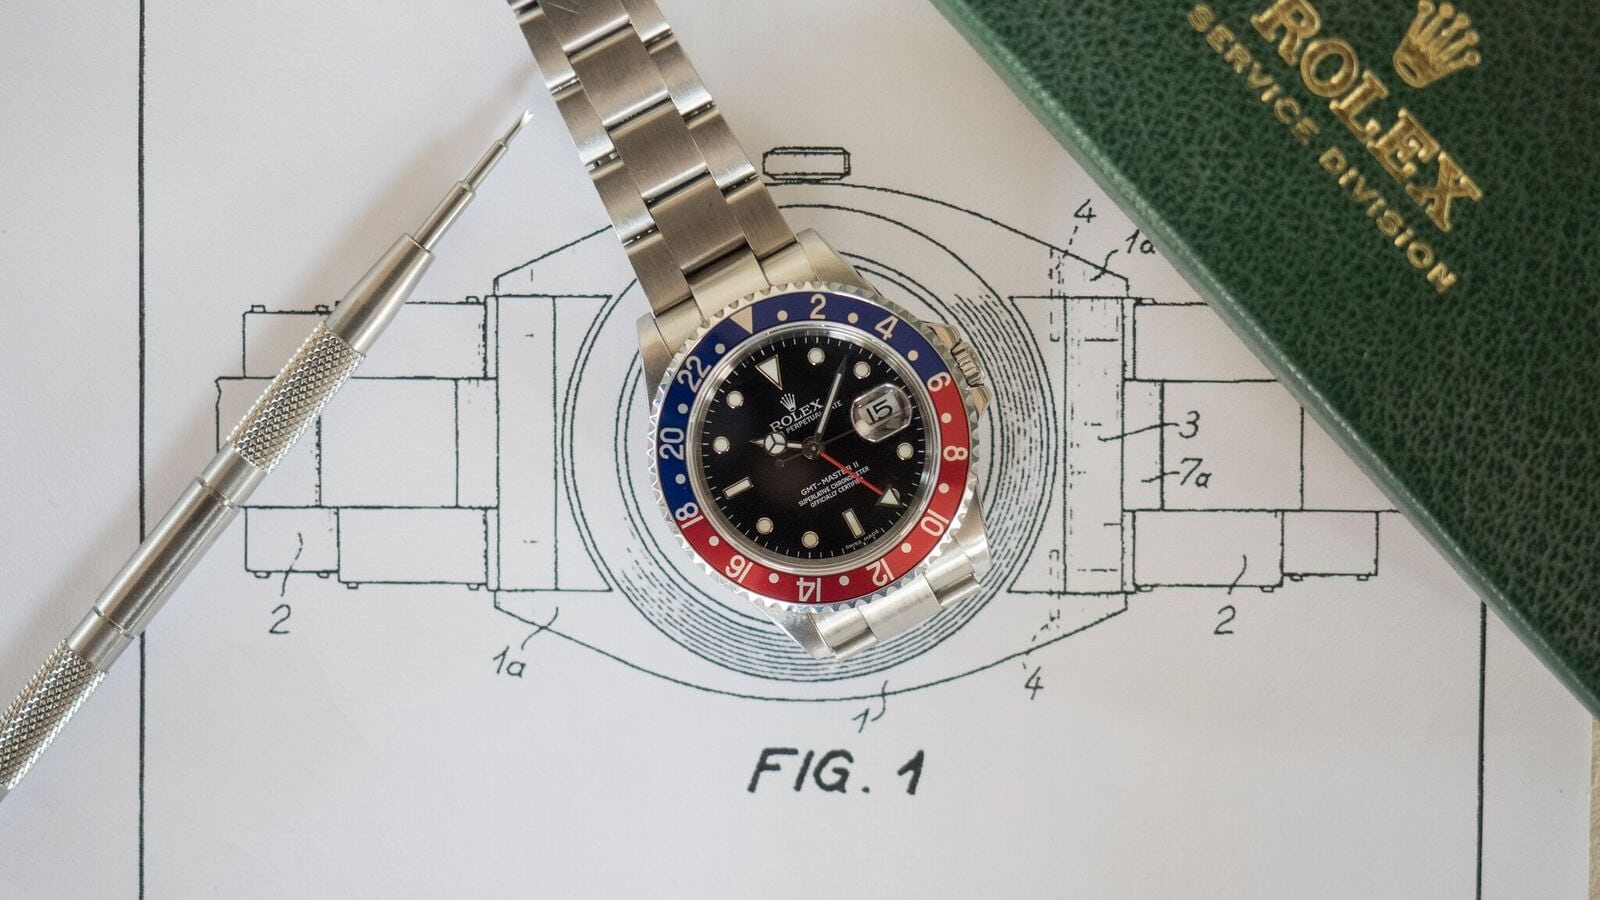 fb46ceee3cd Historical Perspectives  The Fascinating (And Totally Geeky) Story Of The  Rolex Oyster Bracelet - HODINKEE